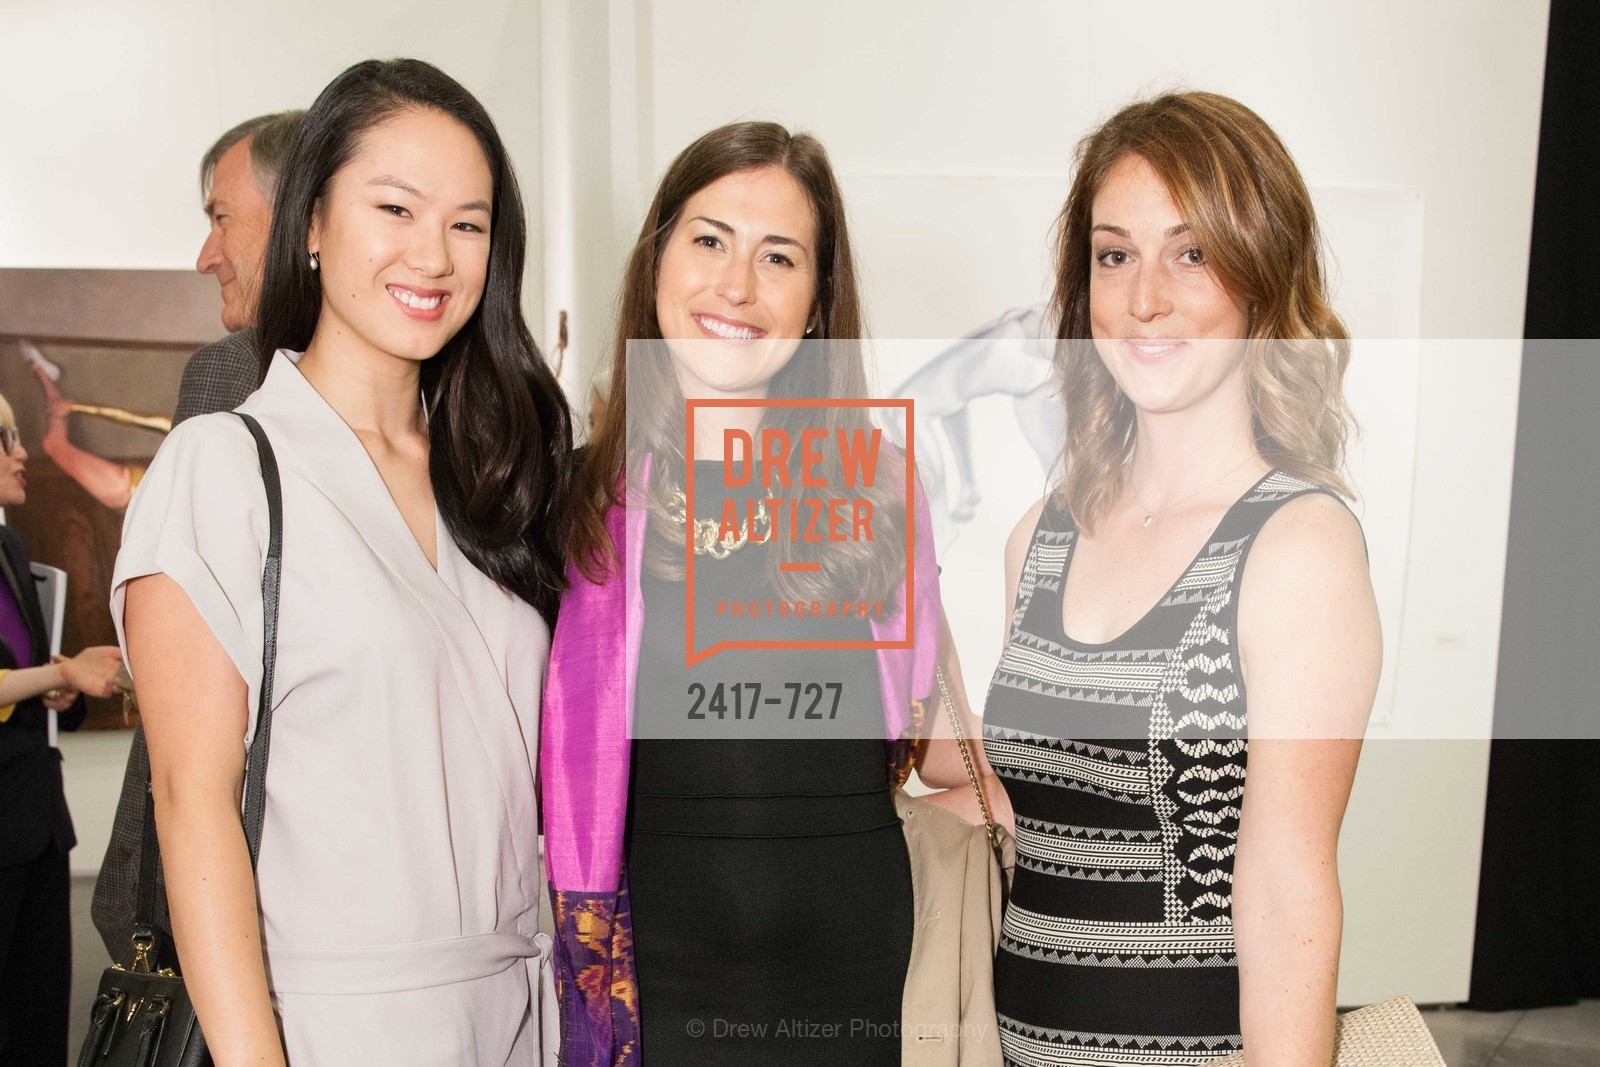 Tali Jang, Katy Dickensheets, Claire Herr, SAN FRANCISCO ART INSTITUTE Gala Honoring Art Visionary and Advocate ROSELYNE CHROMAN SWIG, US, May 14th, 2015,Drew Altizer, Drew Altizer Photography, full-service agency, private events, San Francisco photographer, photographer california